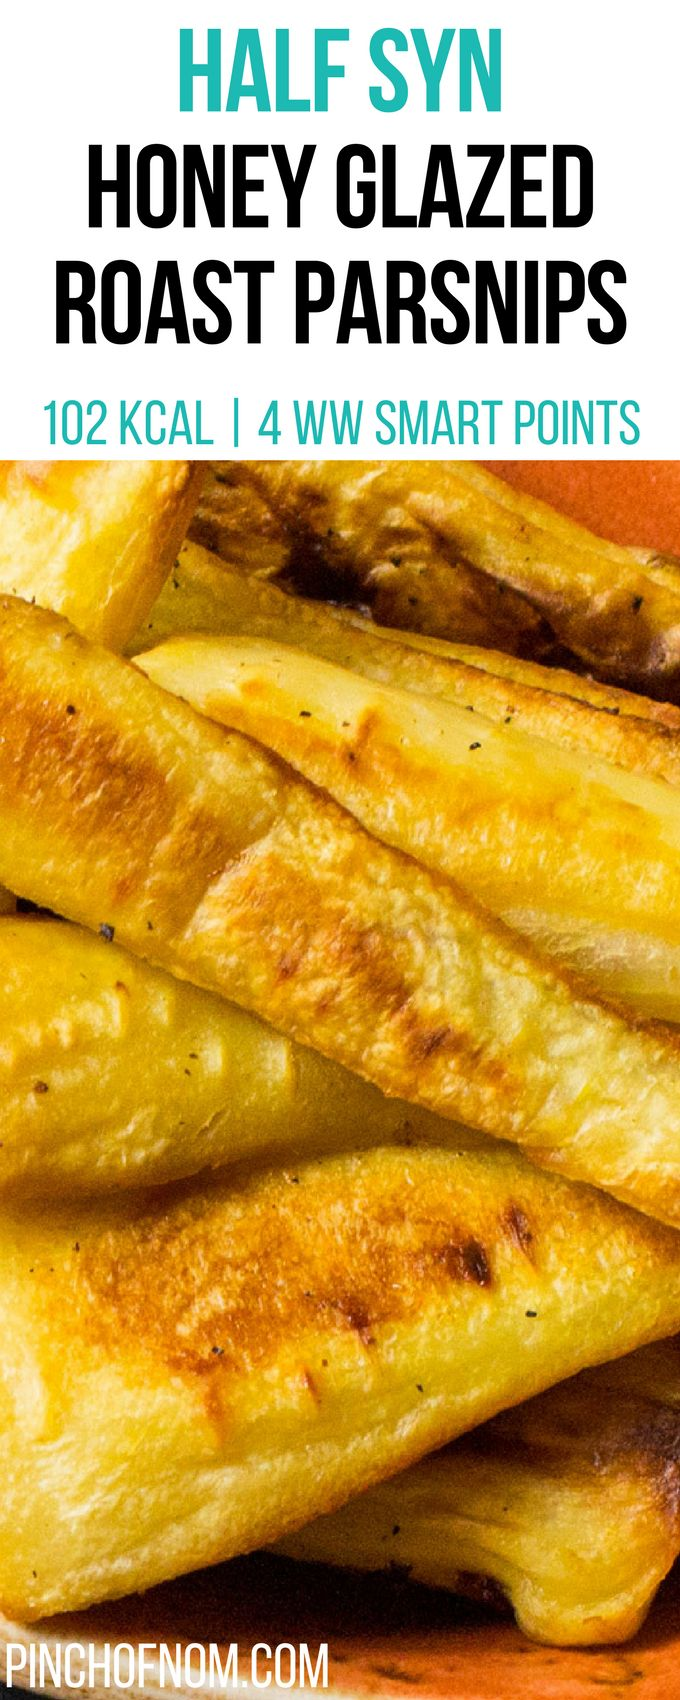 Half Syn Honey Glazed Roast Parsnips | Pinch Of Nom Slimming World Recipes    102 kcal | 0.5 Syn | 4 Weight Watchers Smart Points